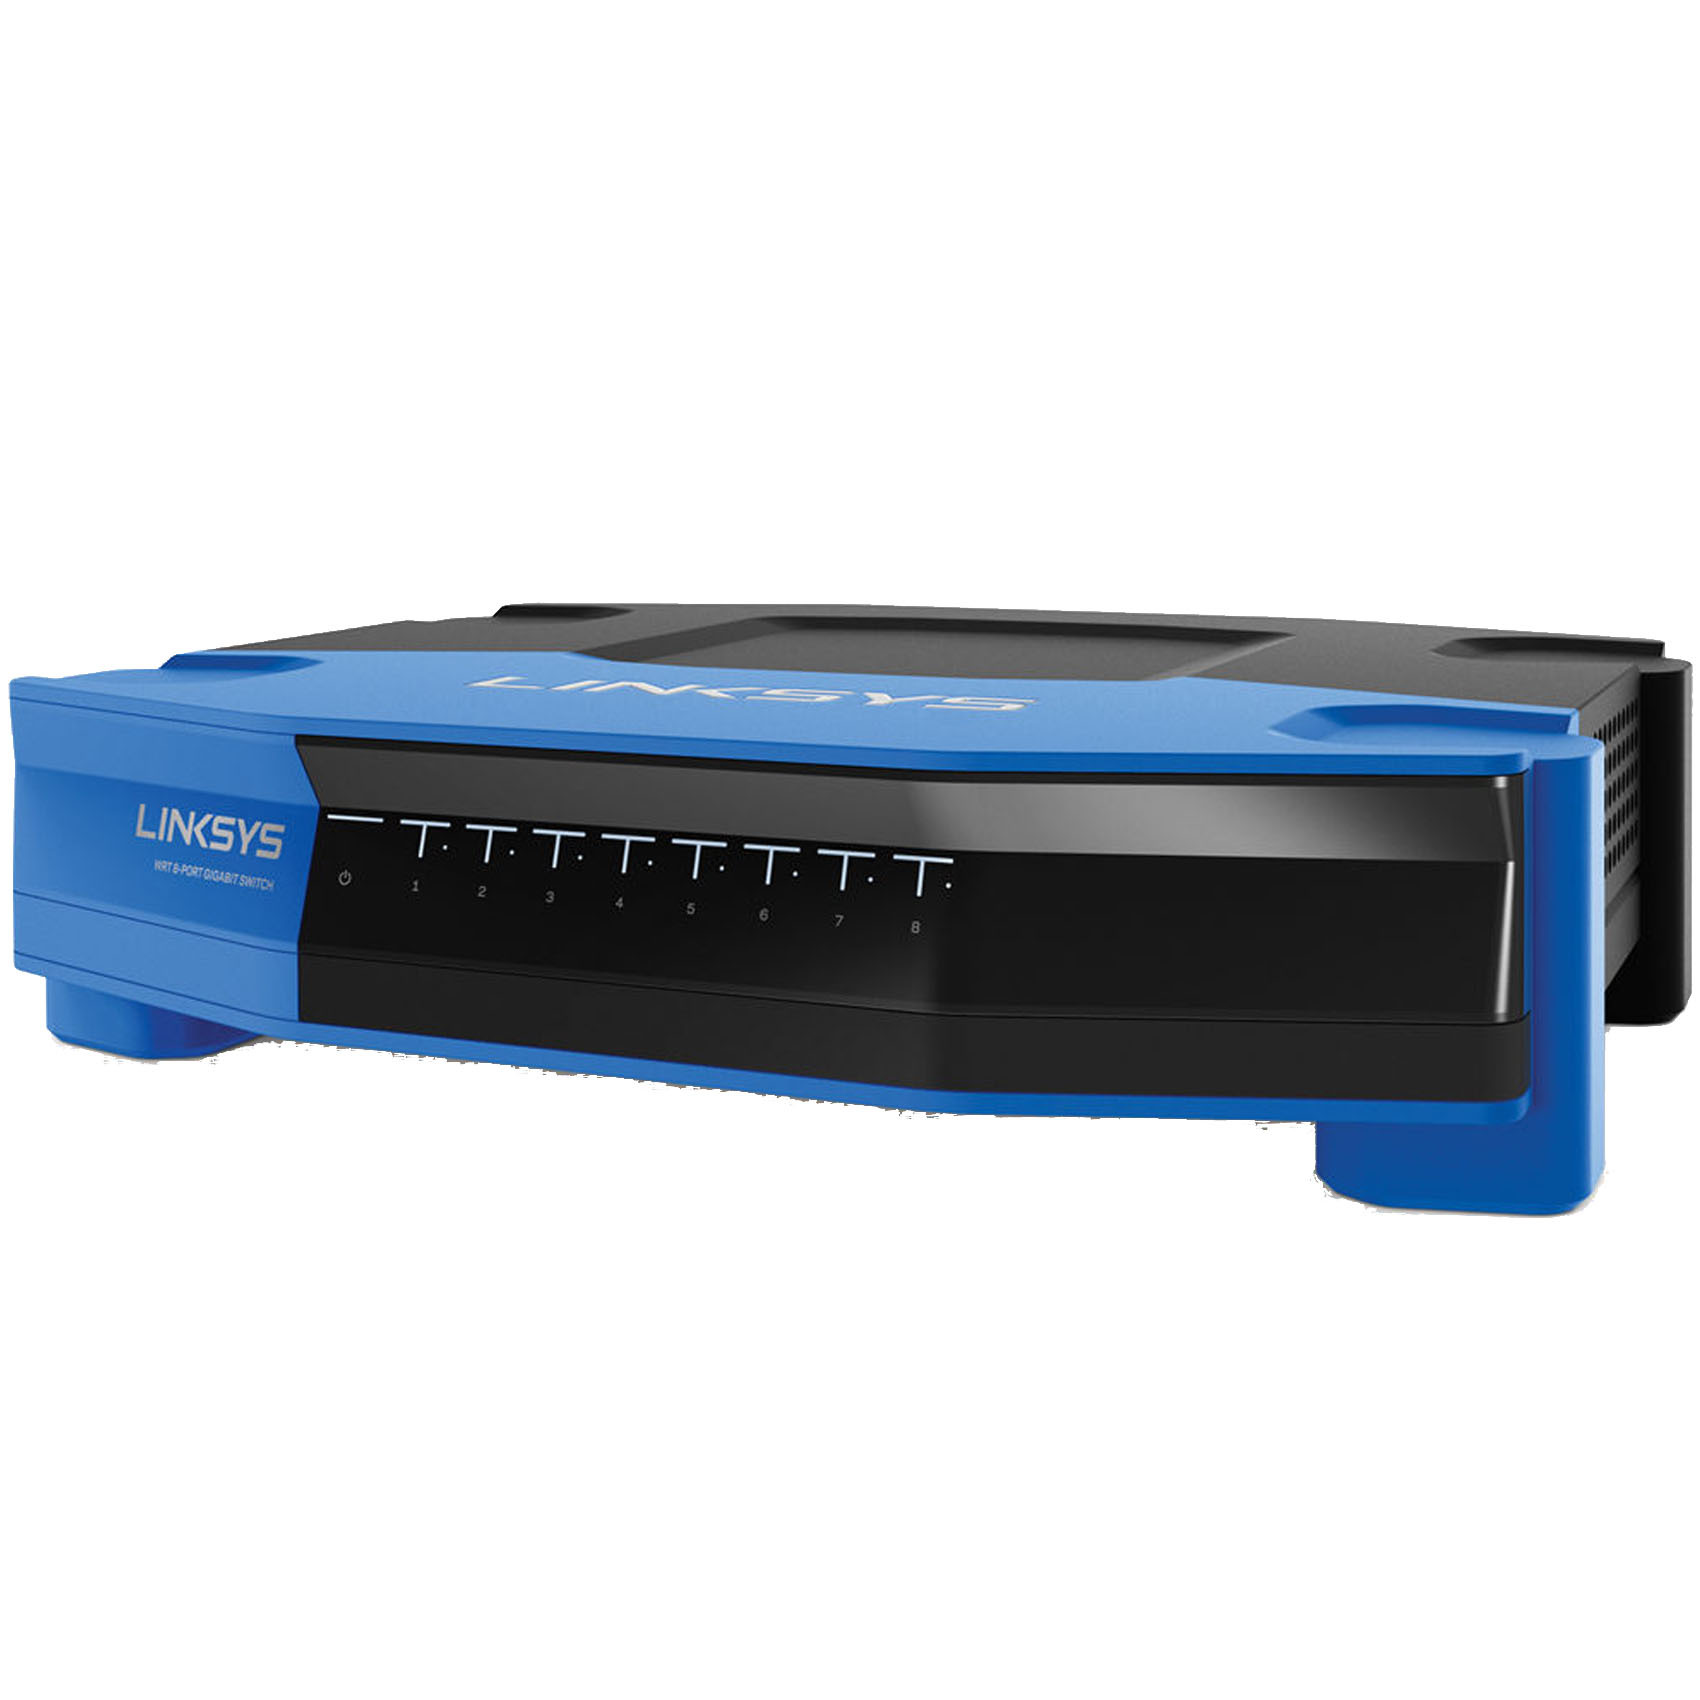 LINKSYS W/L SWITCH SE4008 8 PORT